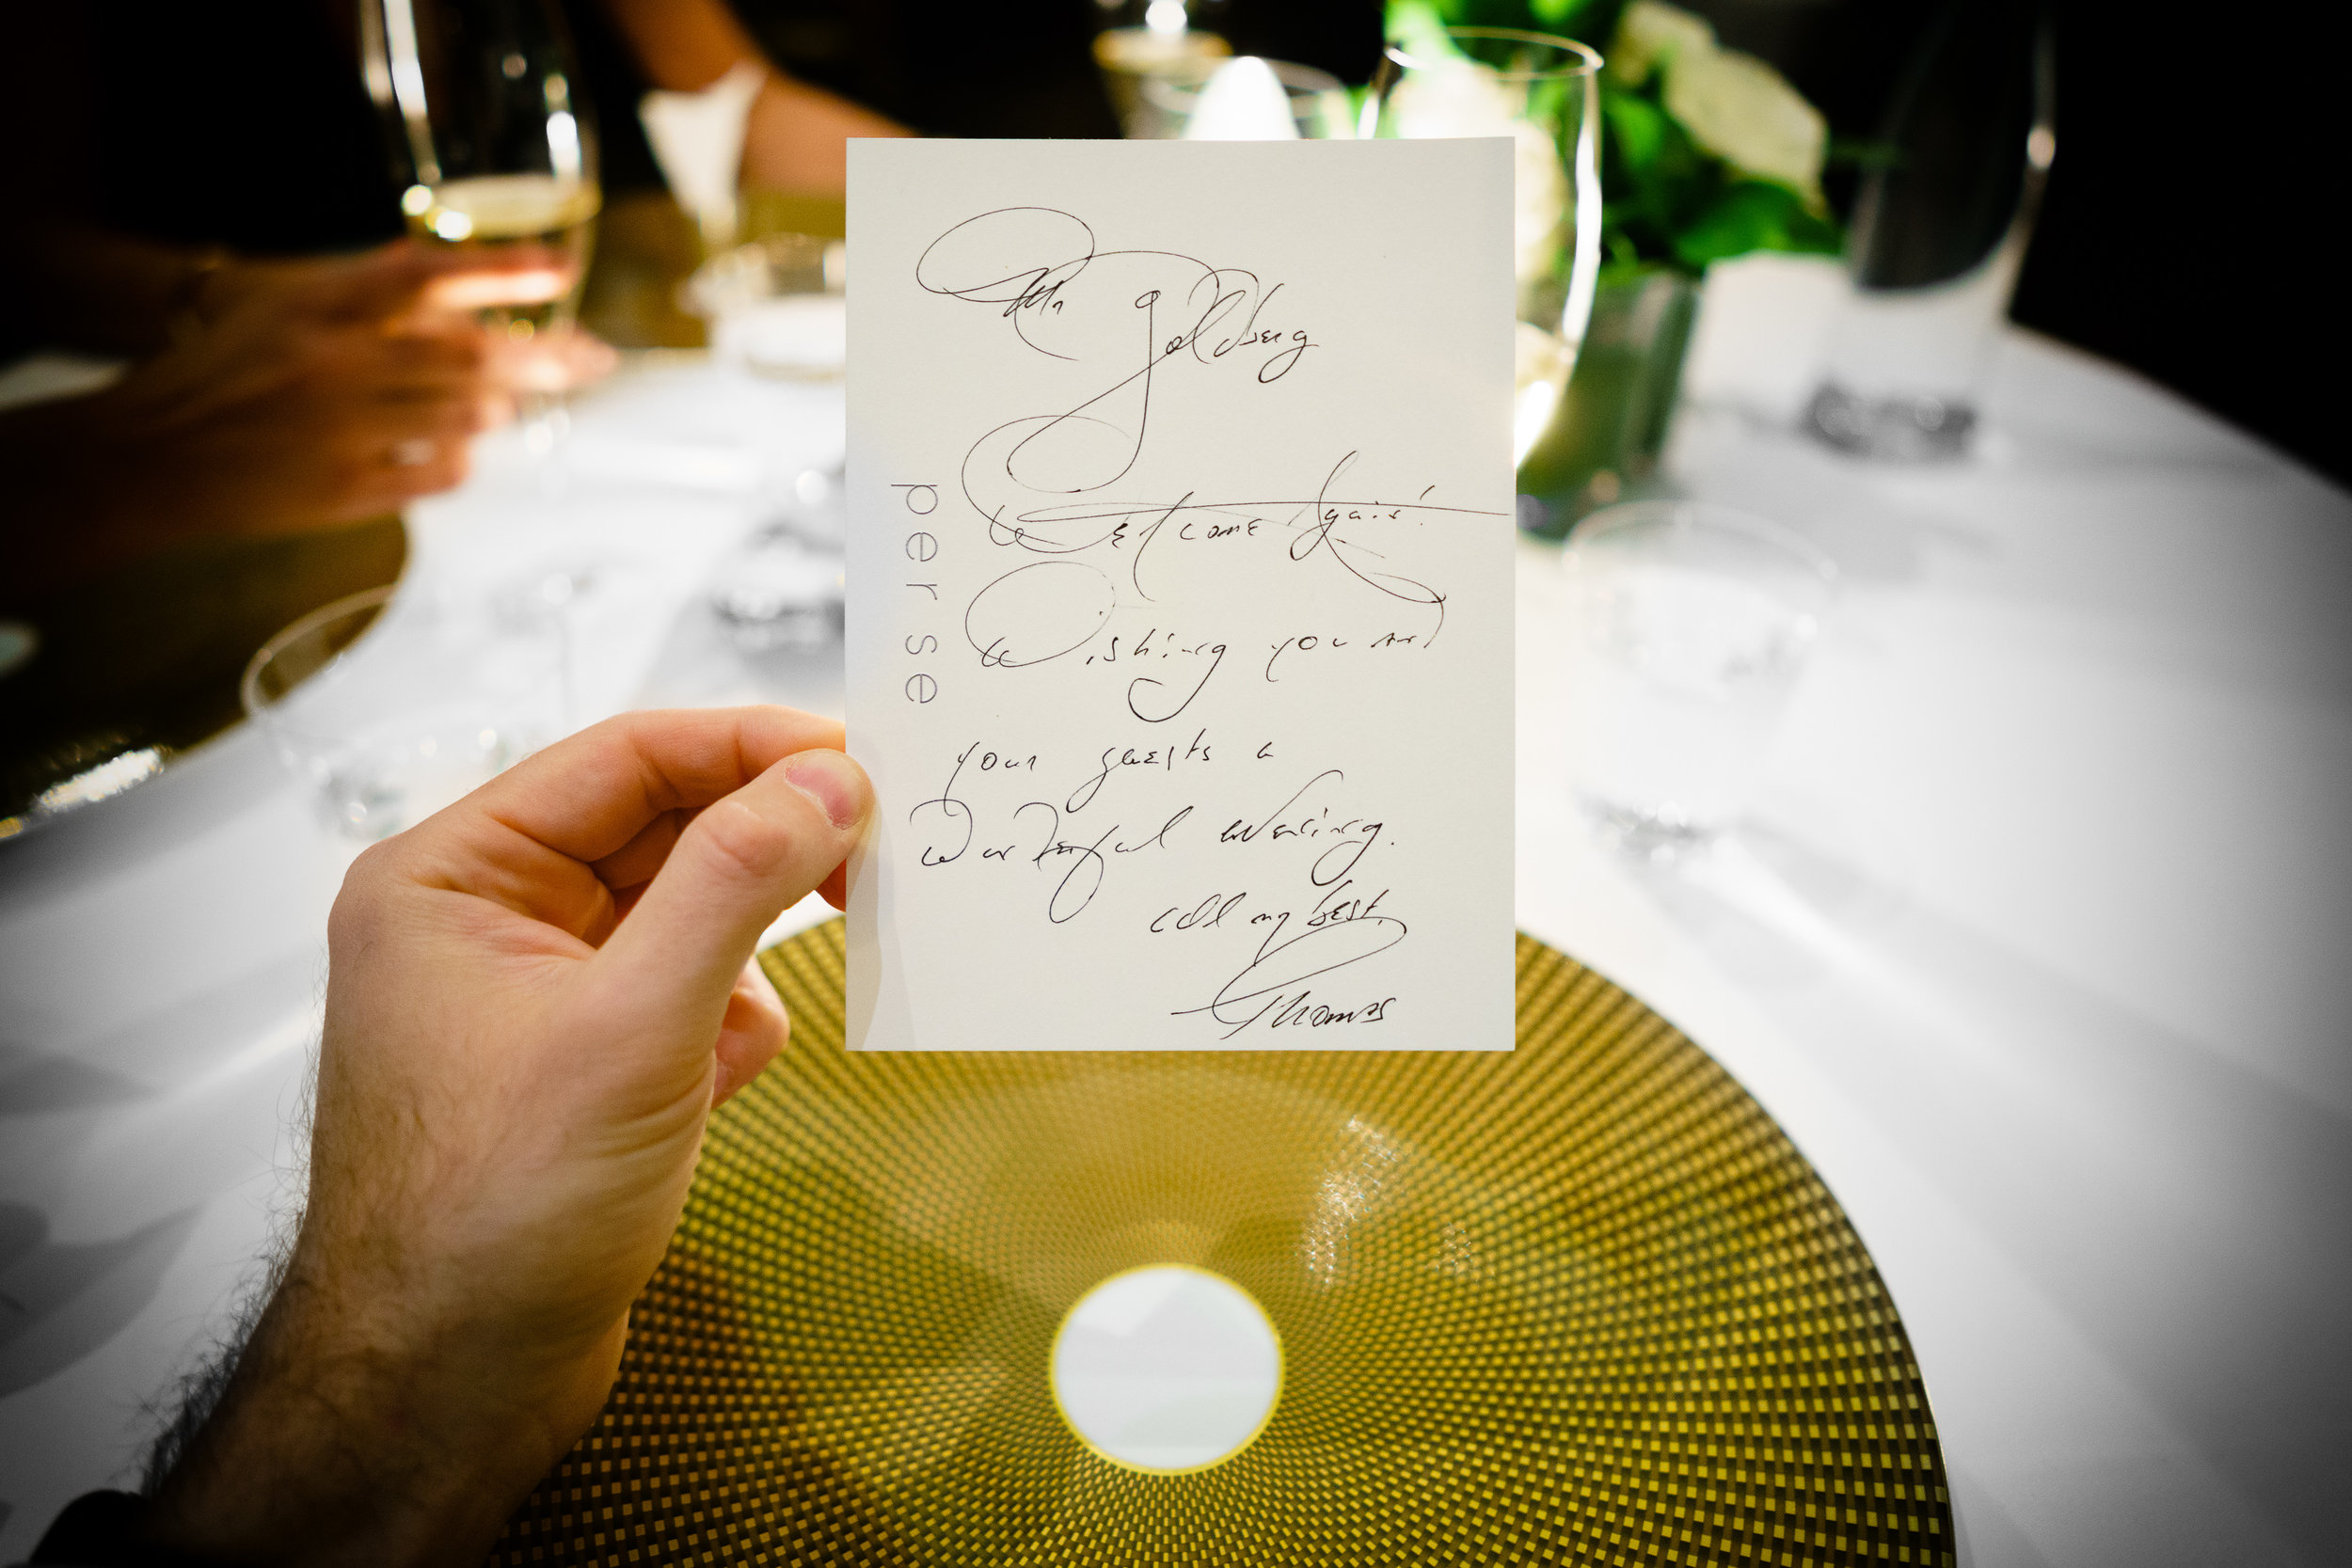 A note from Chef Thomas Keller